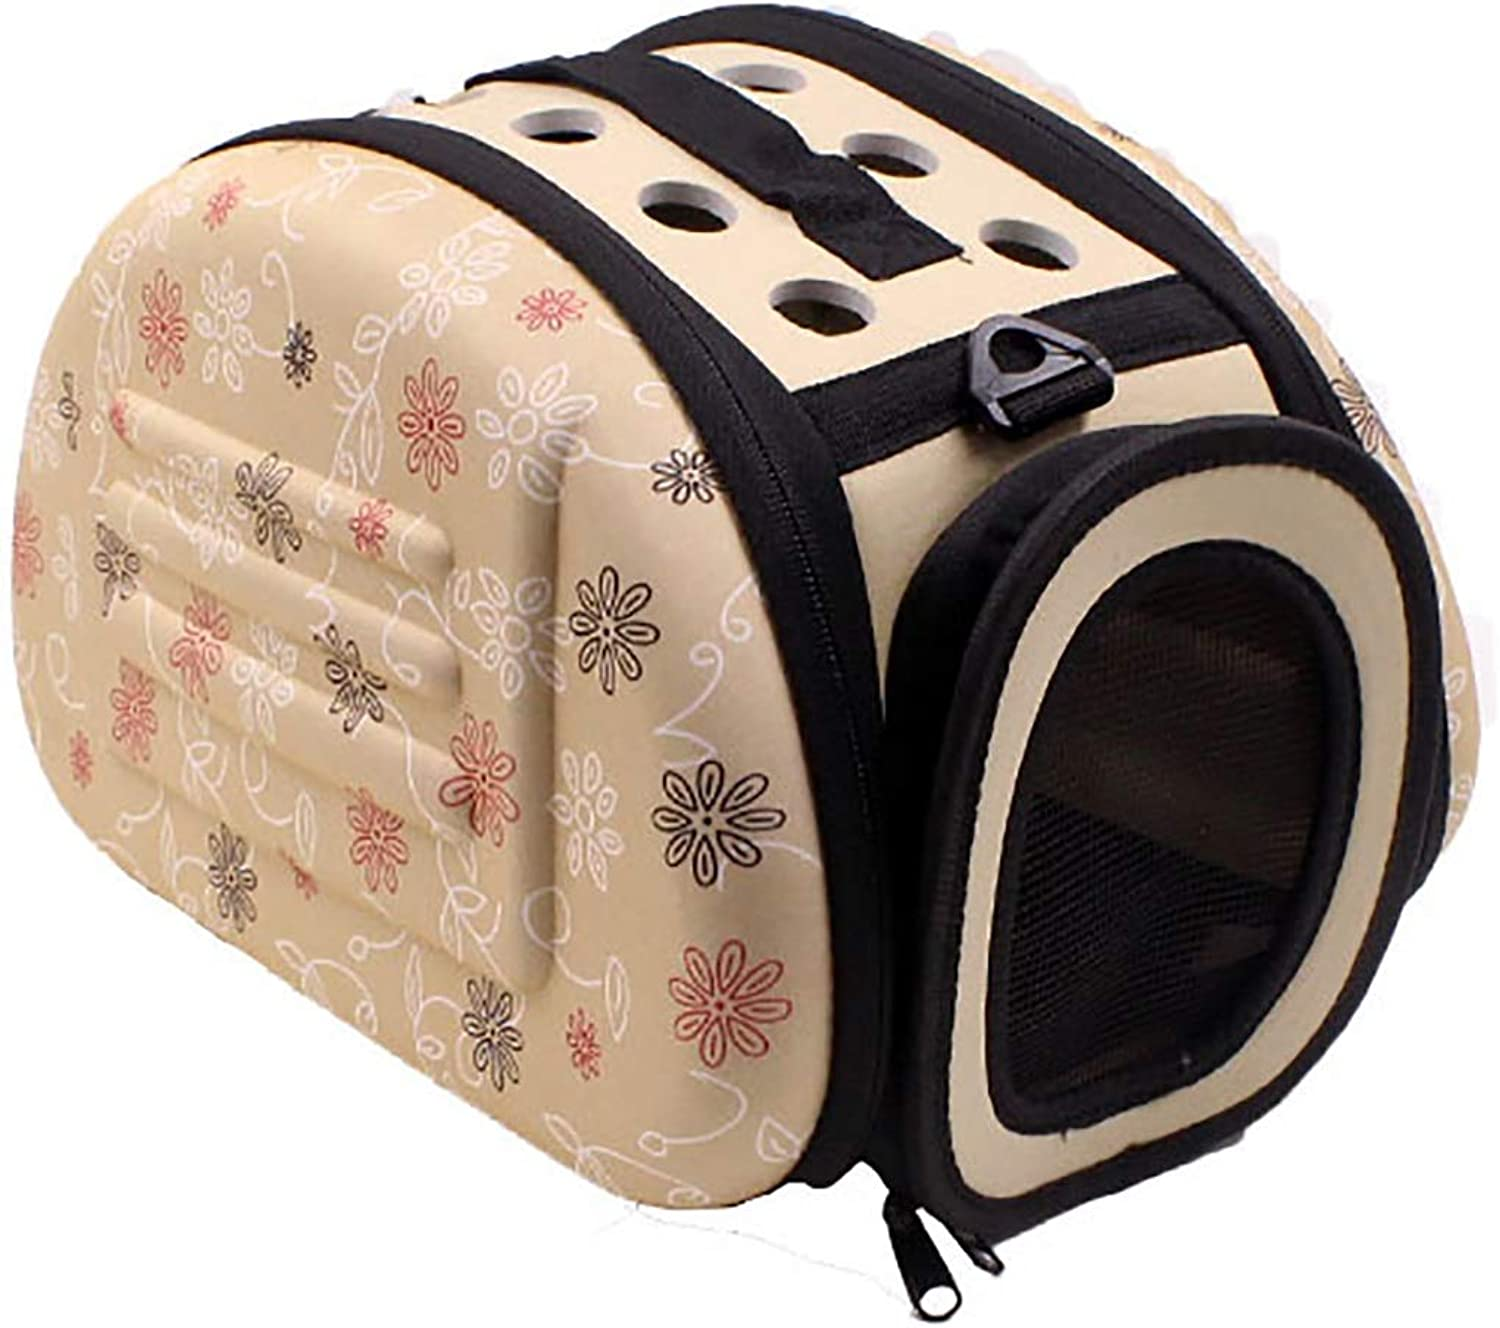 CEFULTY Pet Bags Portable Cat Dog Sleeping Foils Collapsible Pet Travel Bags. (color   Beige, Size   S)